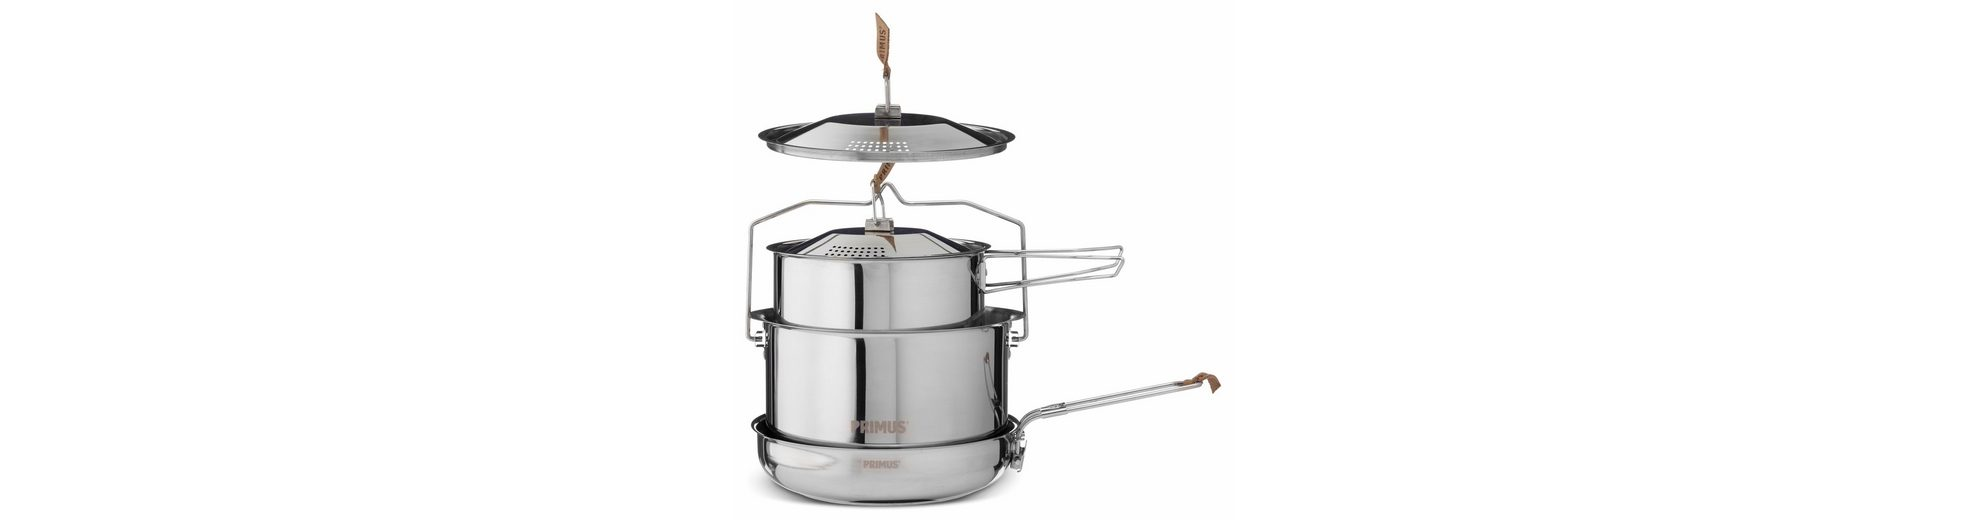 Primus Camping-Geschirr »CampFire Cookset Stainless Steel Large«